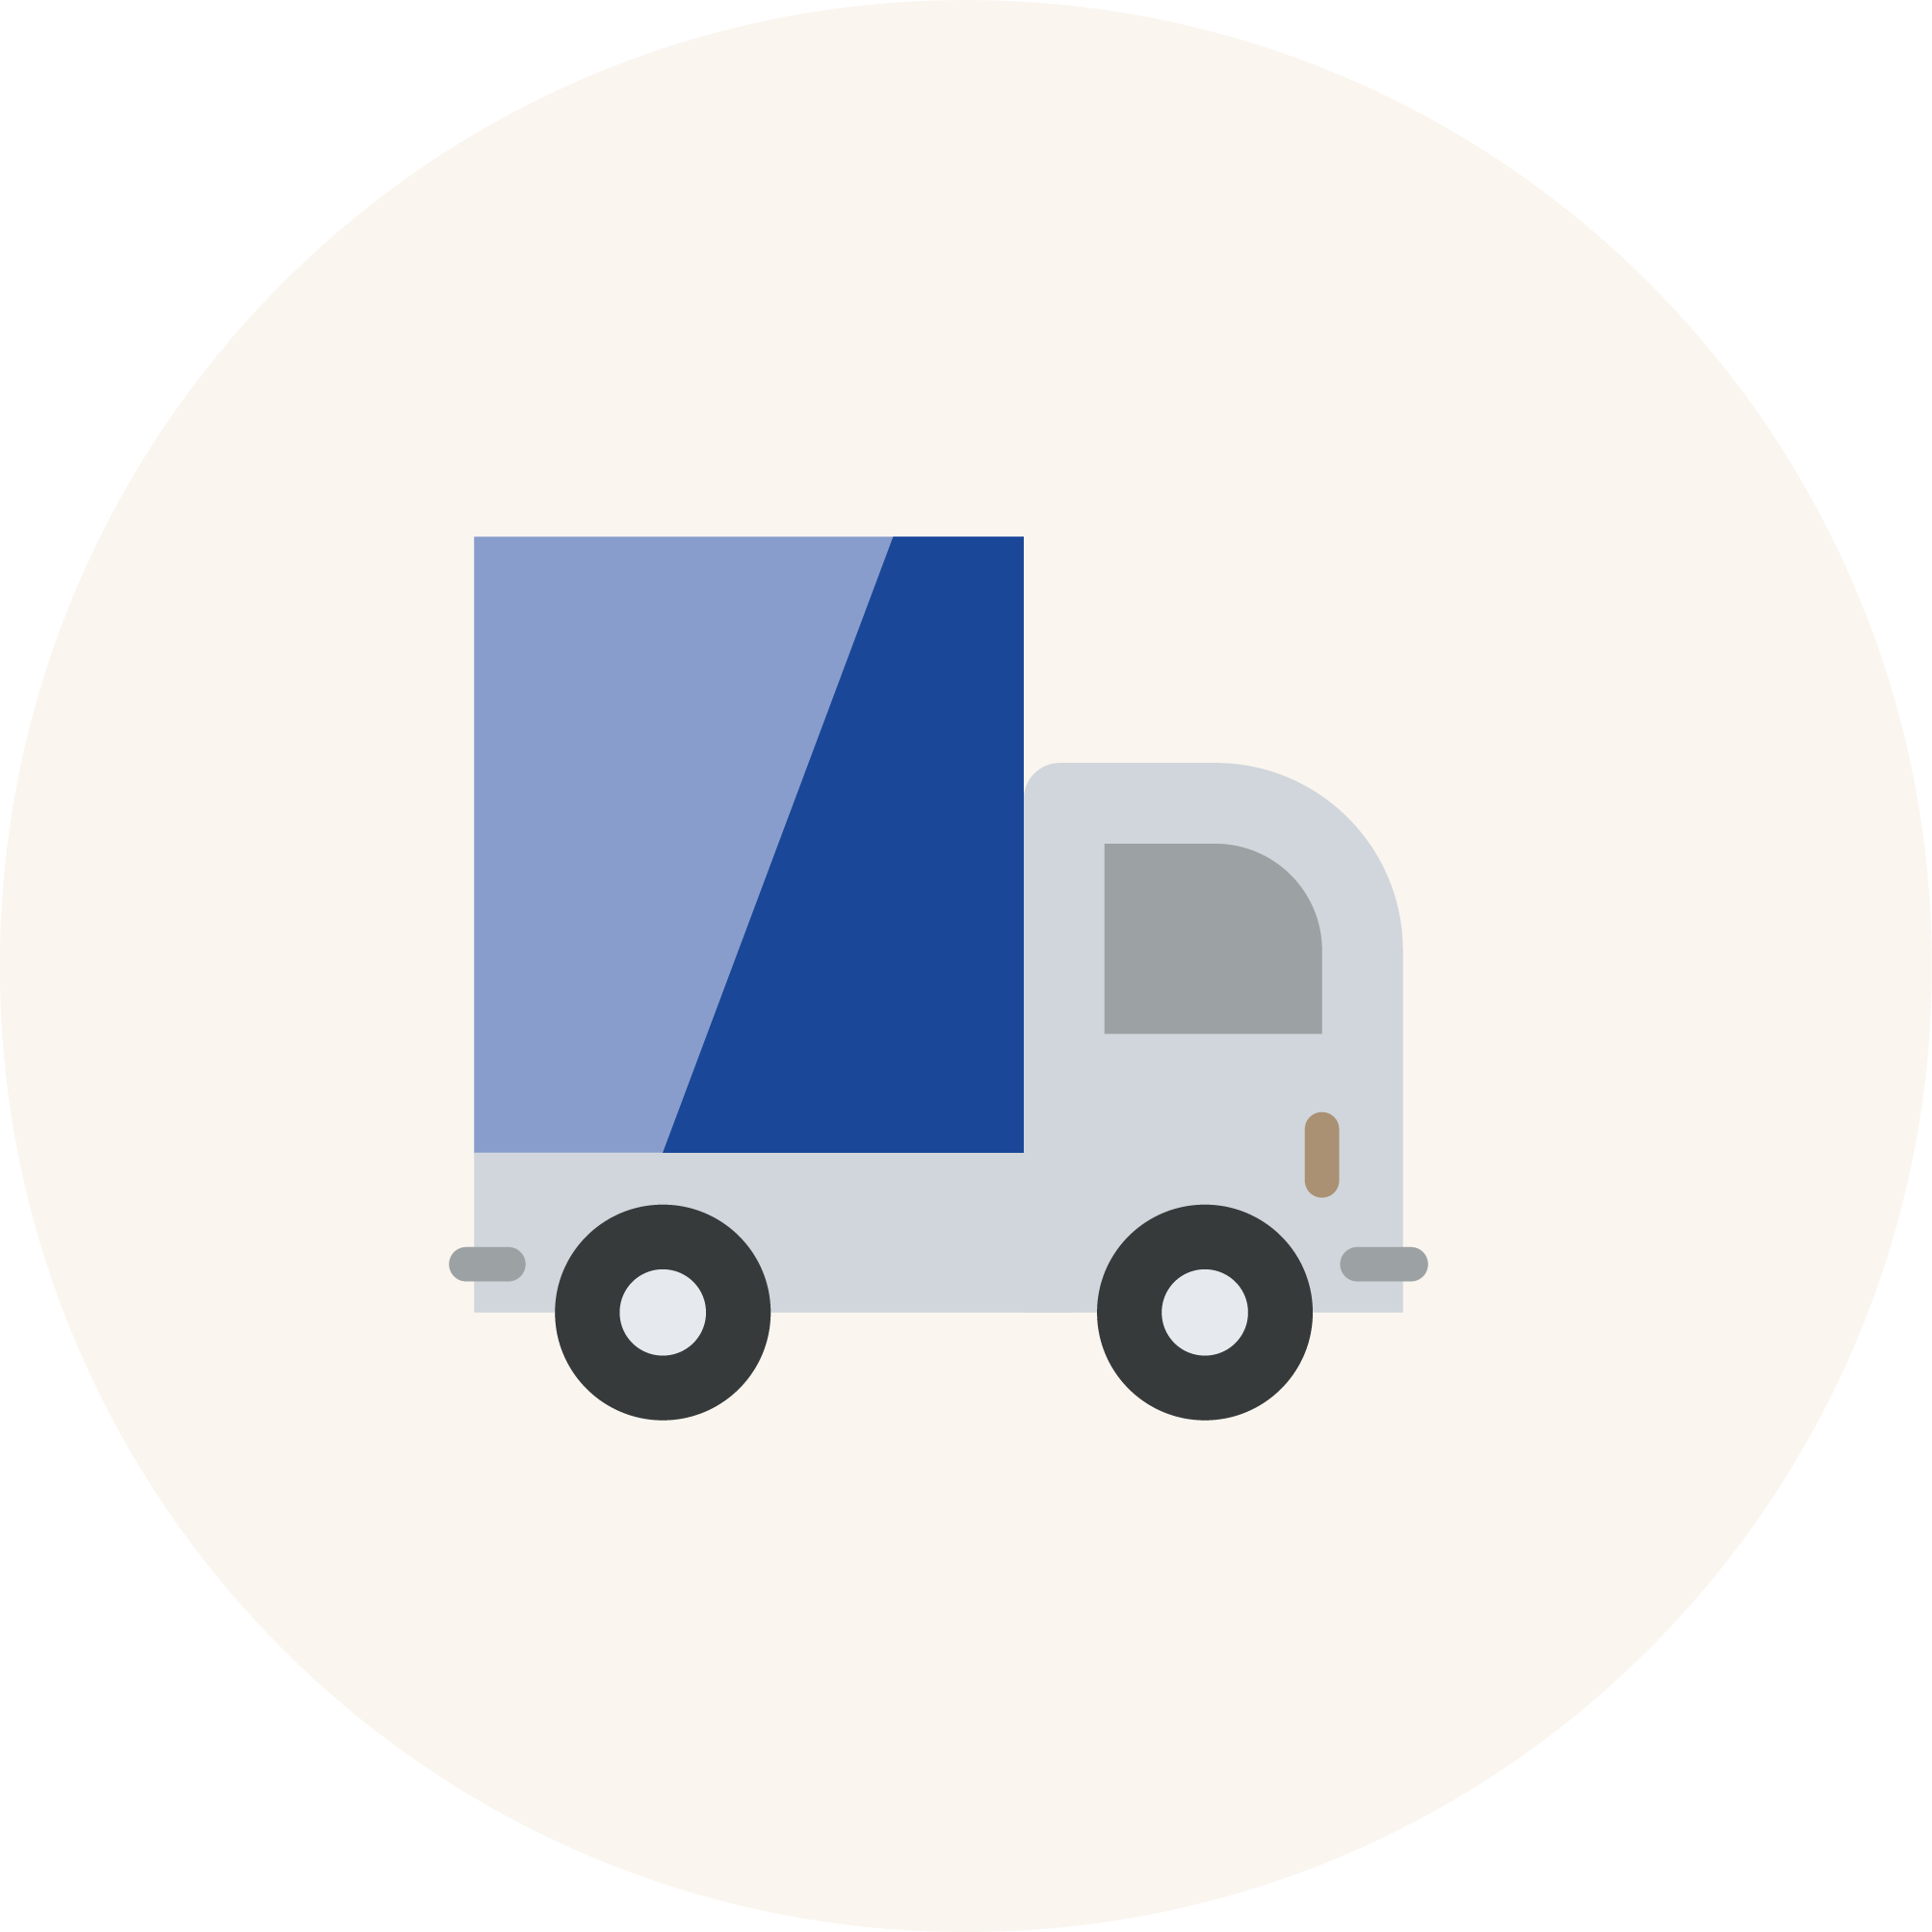 Premium Pickup & Delivery - Even though we're always on the run, we handle shipments with any special requirement: same day, specific time appointment, lift gate, room of choice, two man, specialized lift equipment, & more!